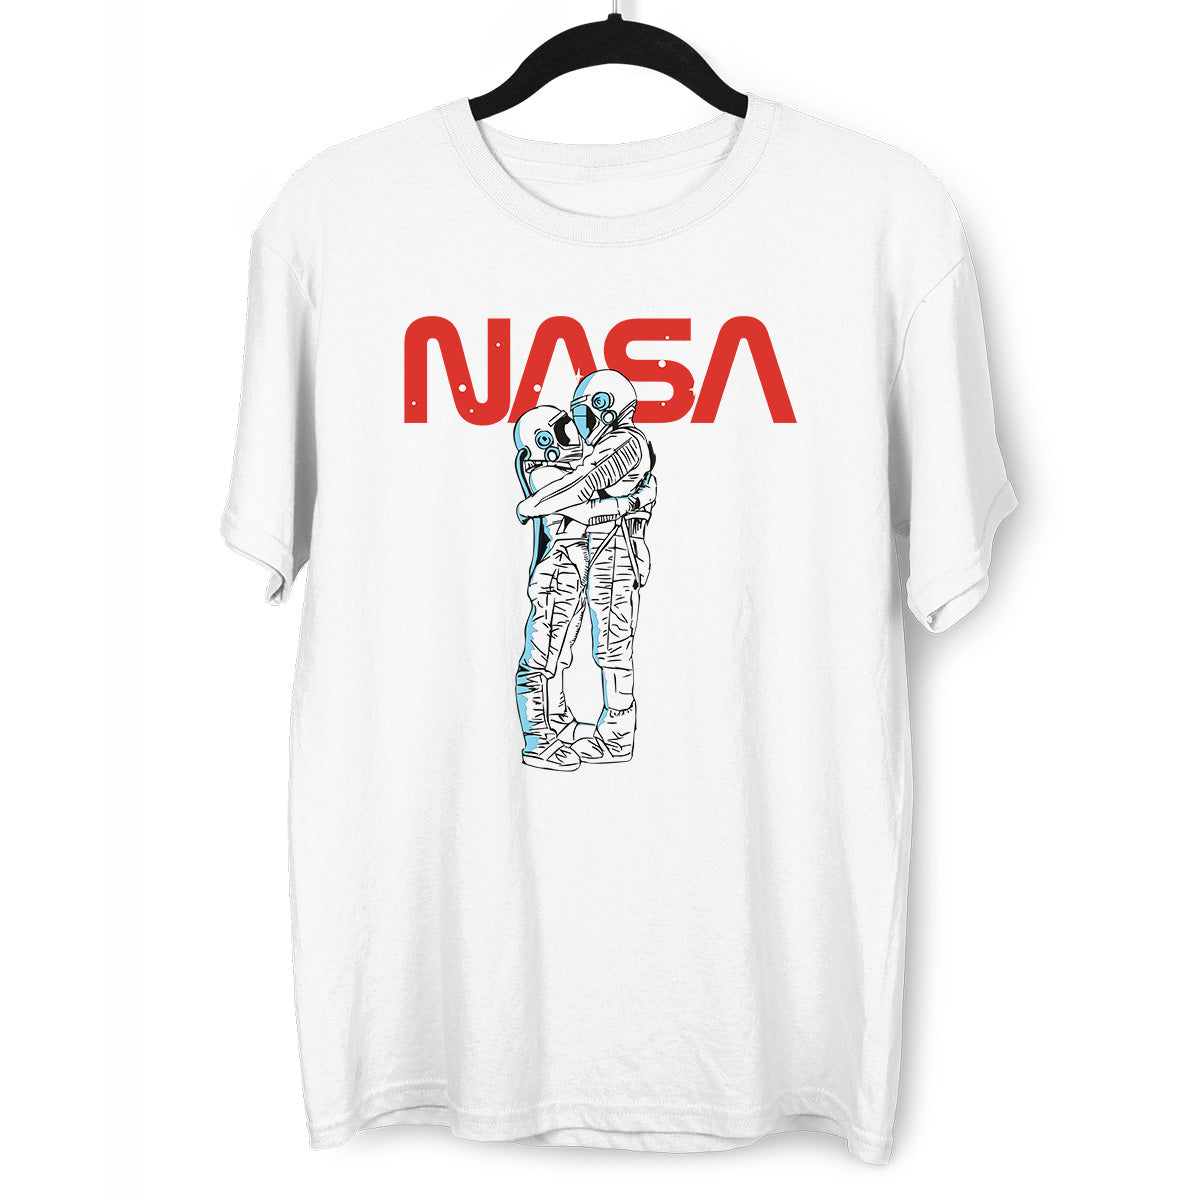 NASA Imagine Love Is In The Air Astronauts Floating in the Space White T-Shirt